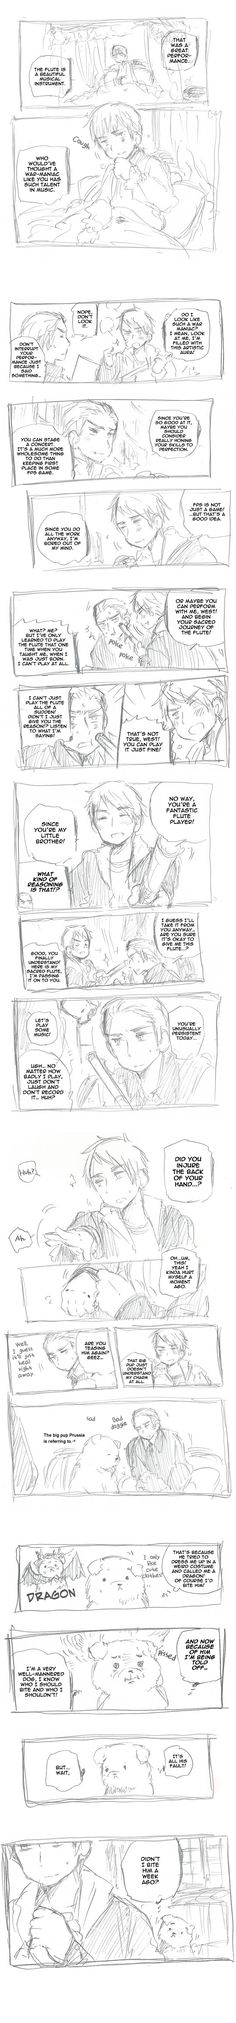 Prussia comic part 2/2 - Damnit this comic makes me want to curl up into a ball and cry every single time.